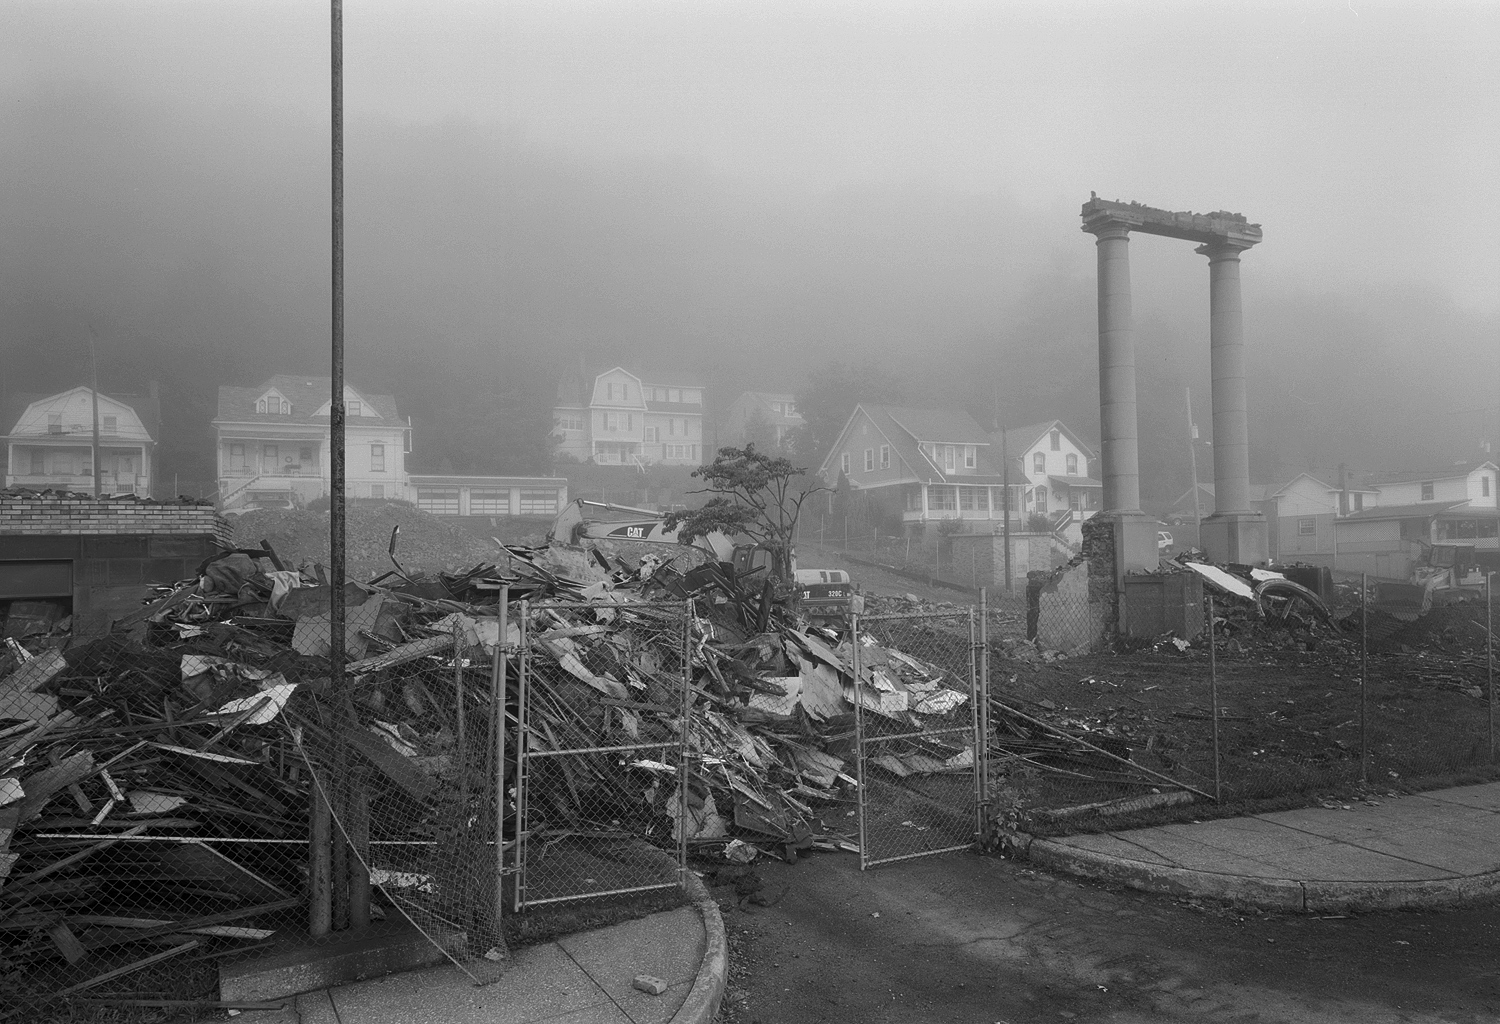 Former 1911 Lincoln High school of Tyrone Pennsylvania,  Fall of 2008. Made just a few days before its complete demise. The gloomy fog is fitting for this image of what remained of the beautiful relic.